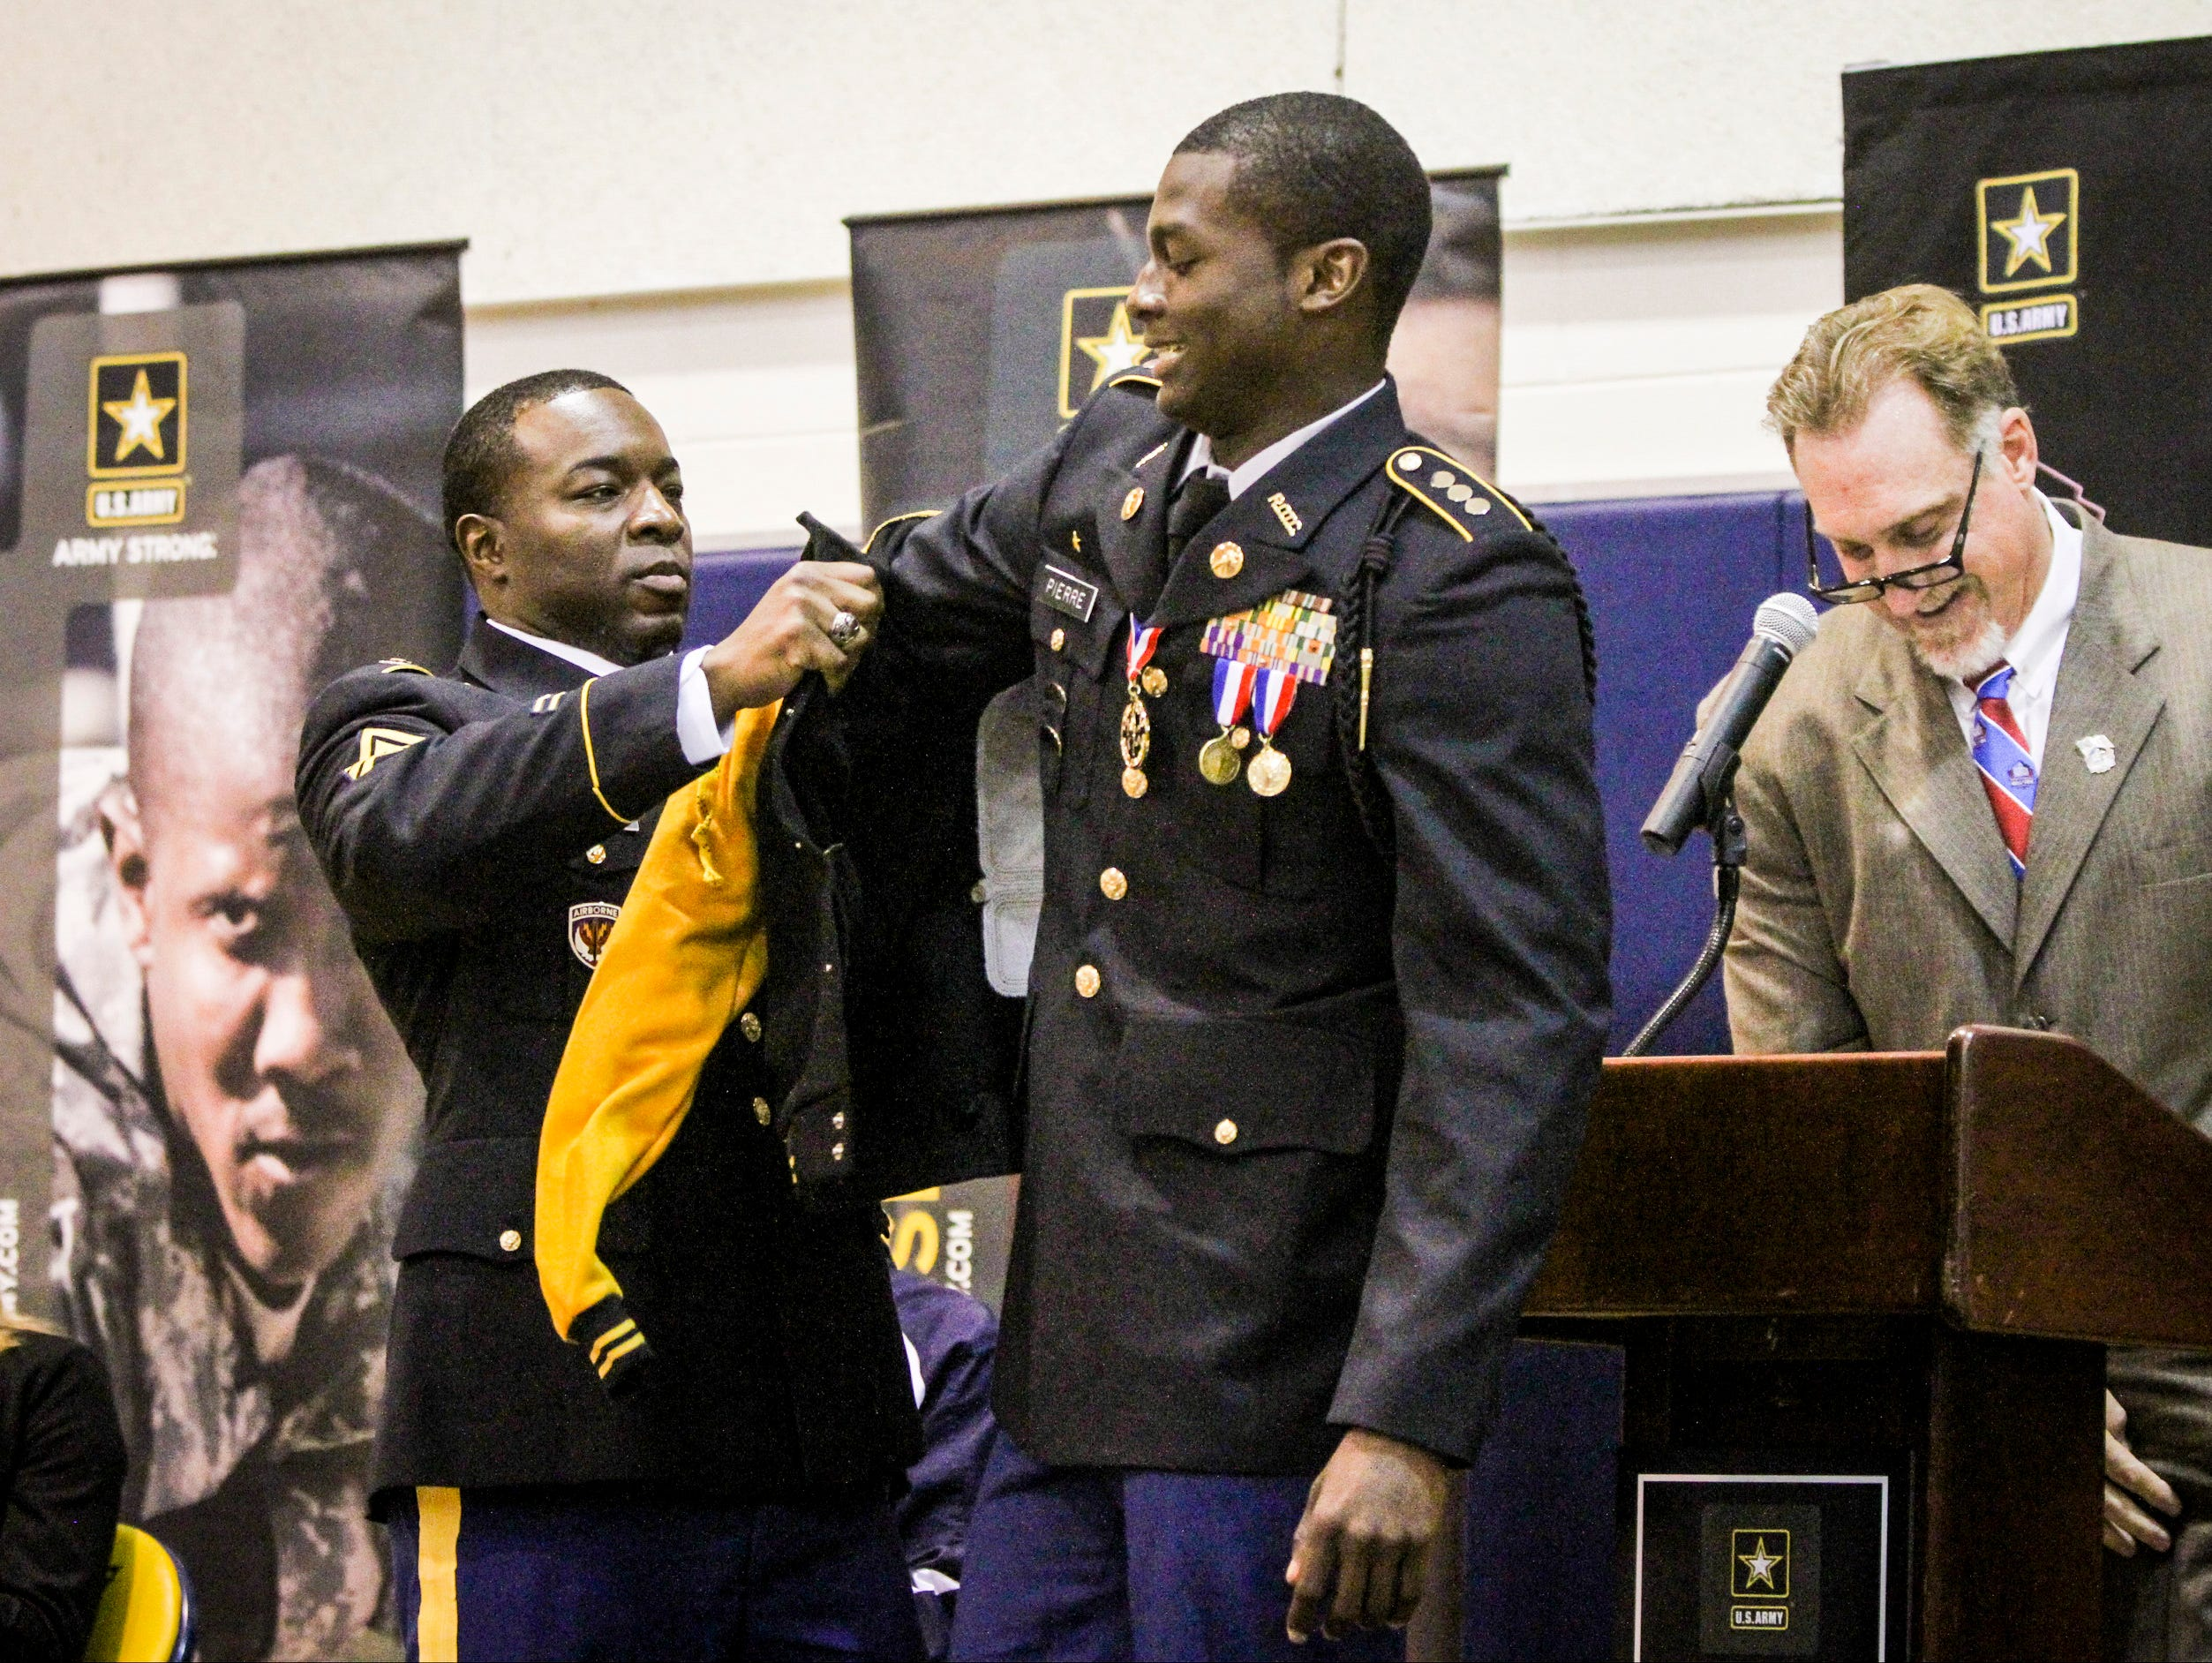 Pierre puts on a Gold jacket from the US Army. Lehigh Senior High senior Wadley Pierre was nominated as a finalist for the US Army and Pro Football Hall of Fame as a student-athlete finalist for an award of excellence. Hall of Fame NFL player Kevin Greene was there to present the recognition.